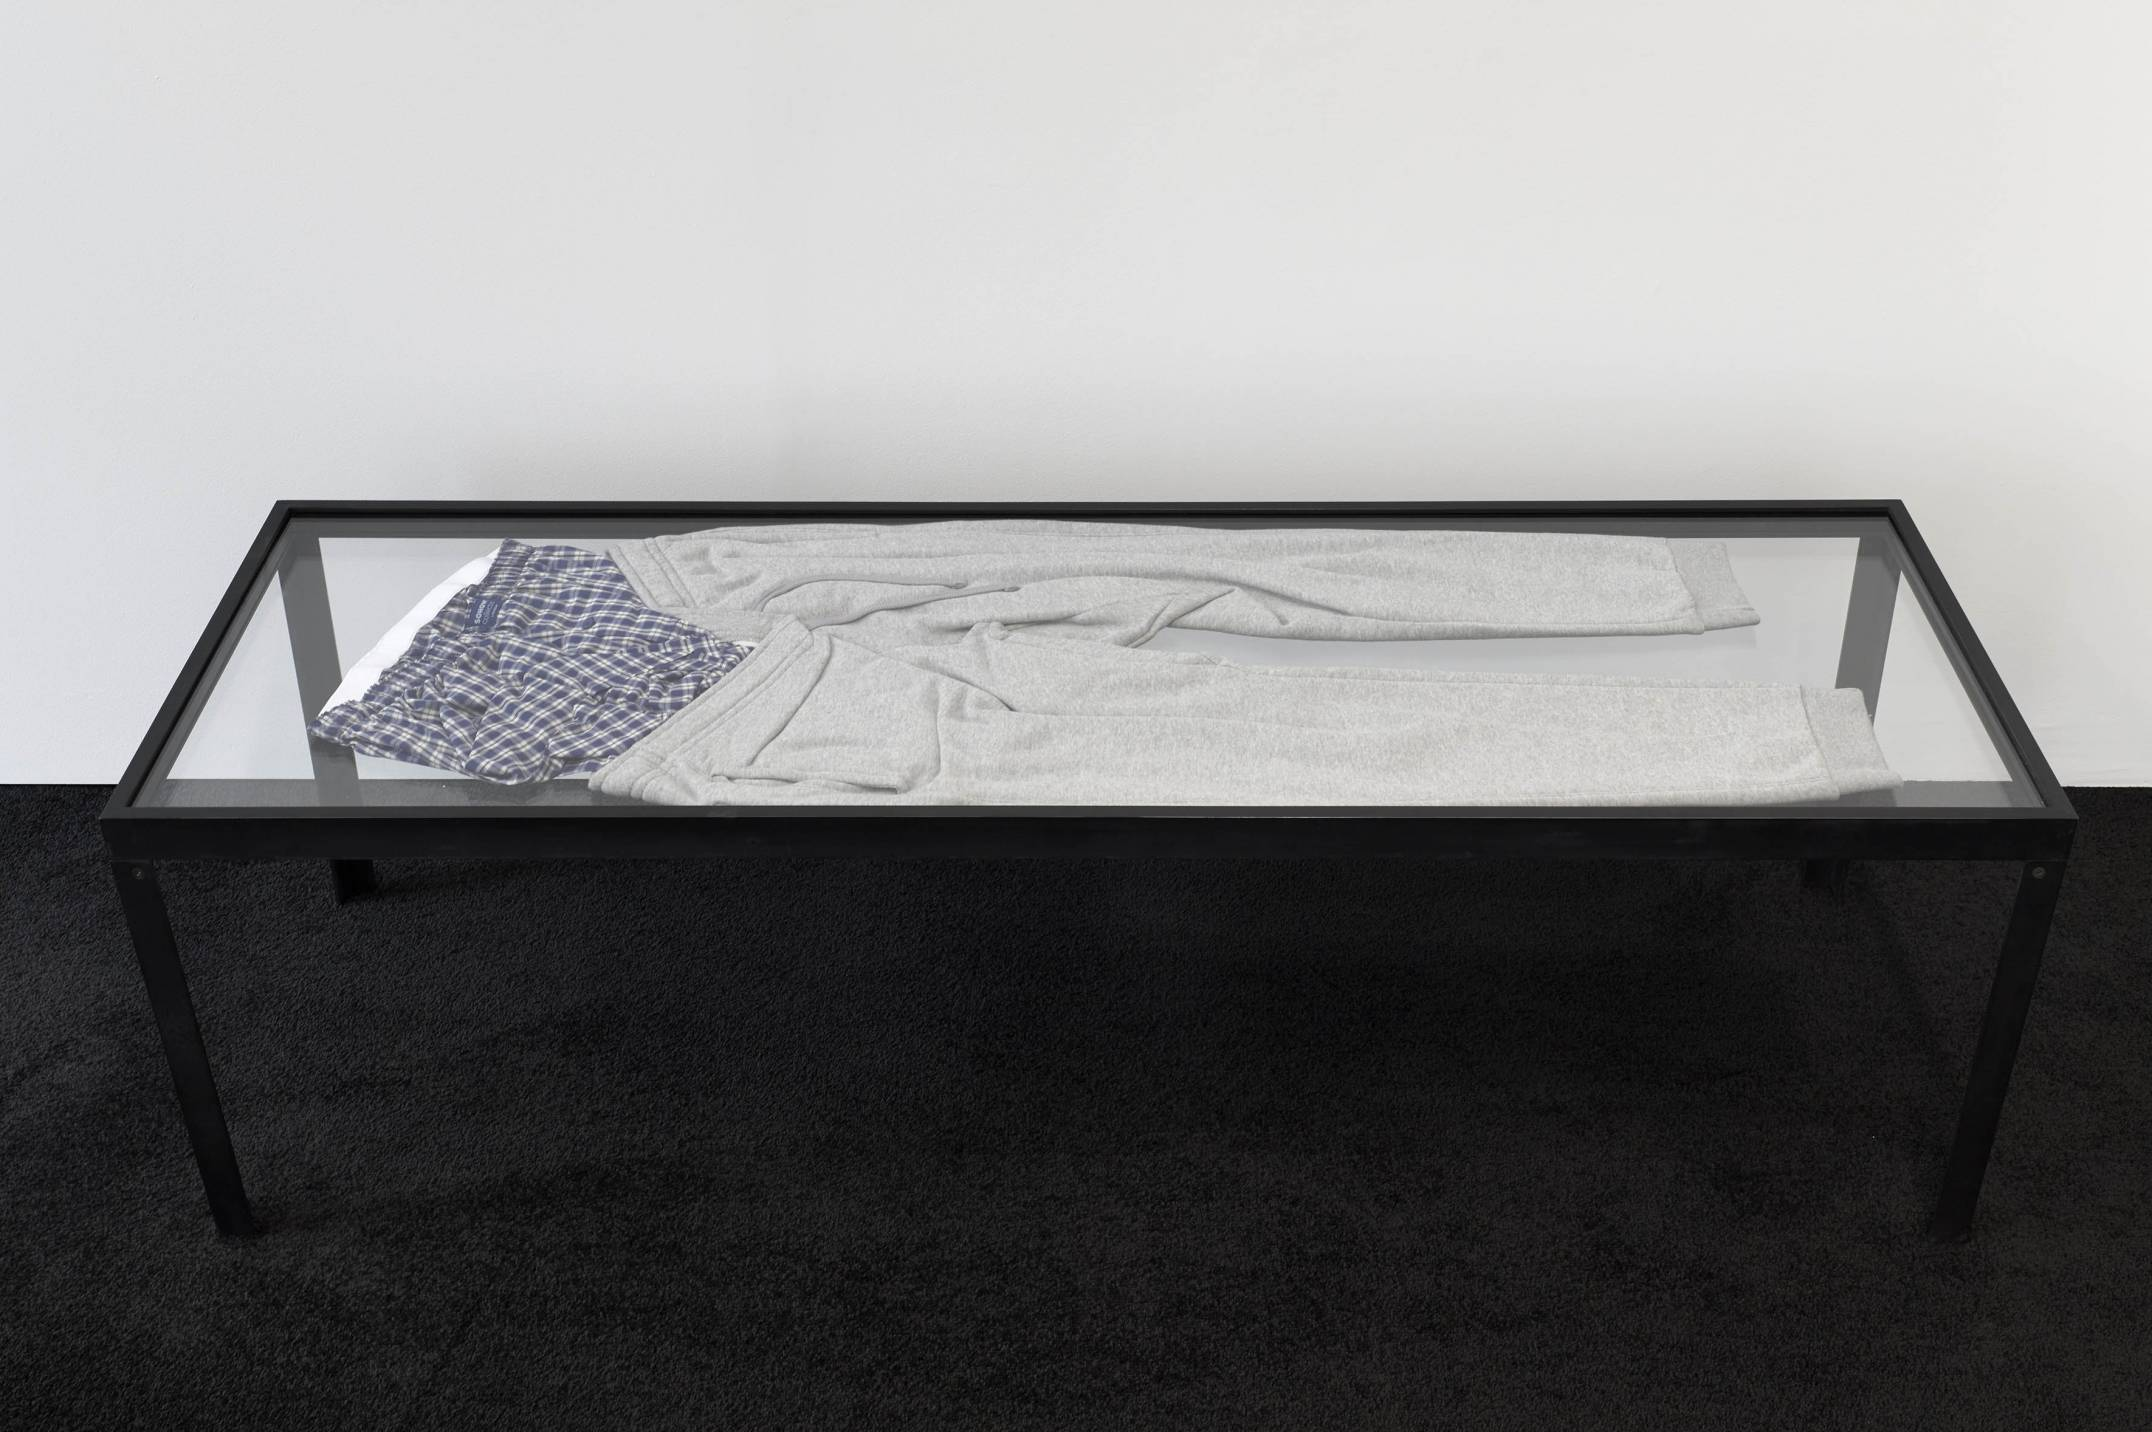 Prem Sahib,&nbsp;<em>Possession I,&nbsp;</em>2017,&nbsp;steel, glass, tracksuit bottoms, boxer shorts, 45 × 150 × 50 cm - Mendes Wood DM